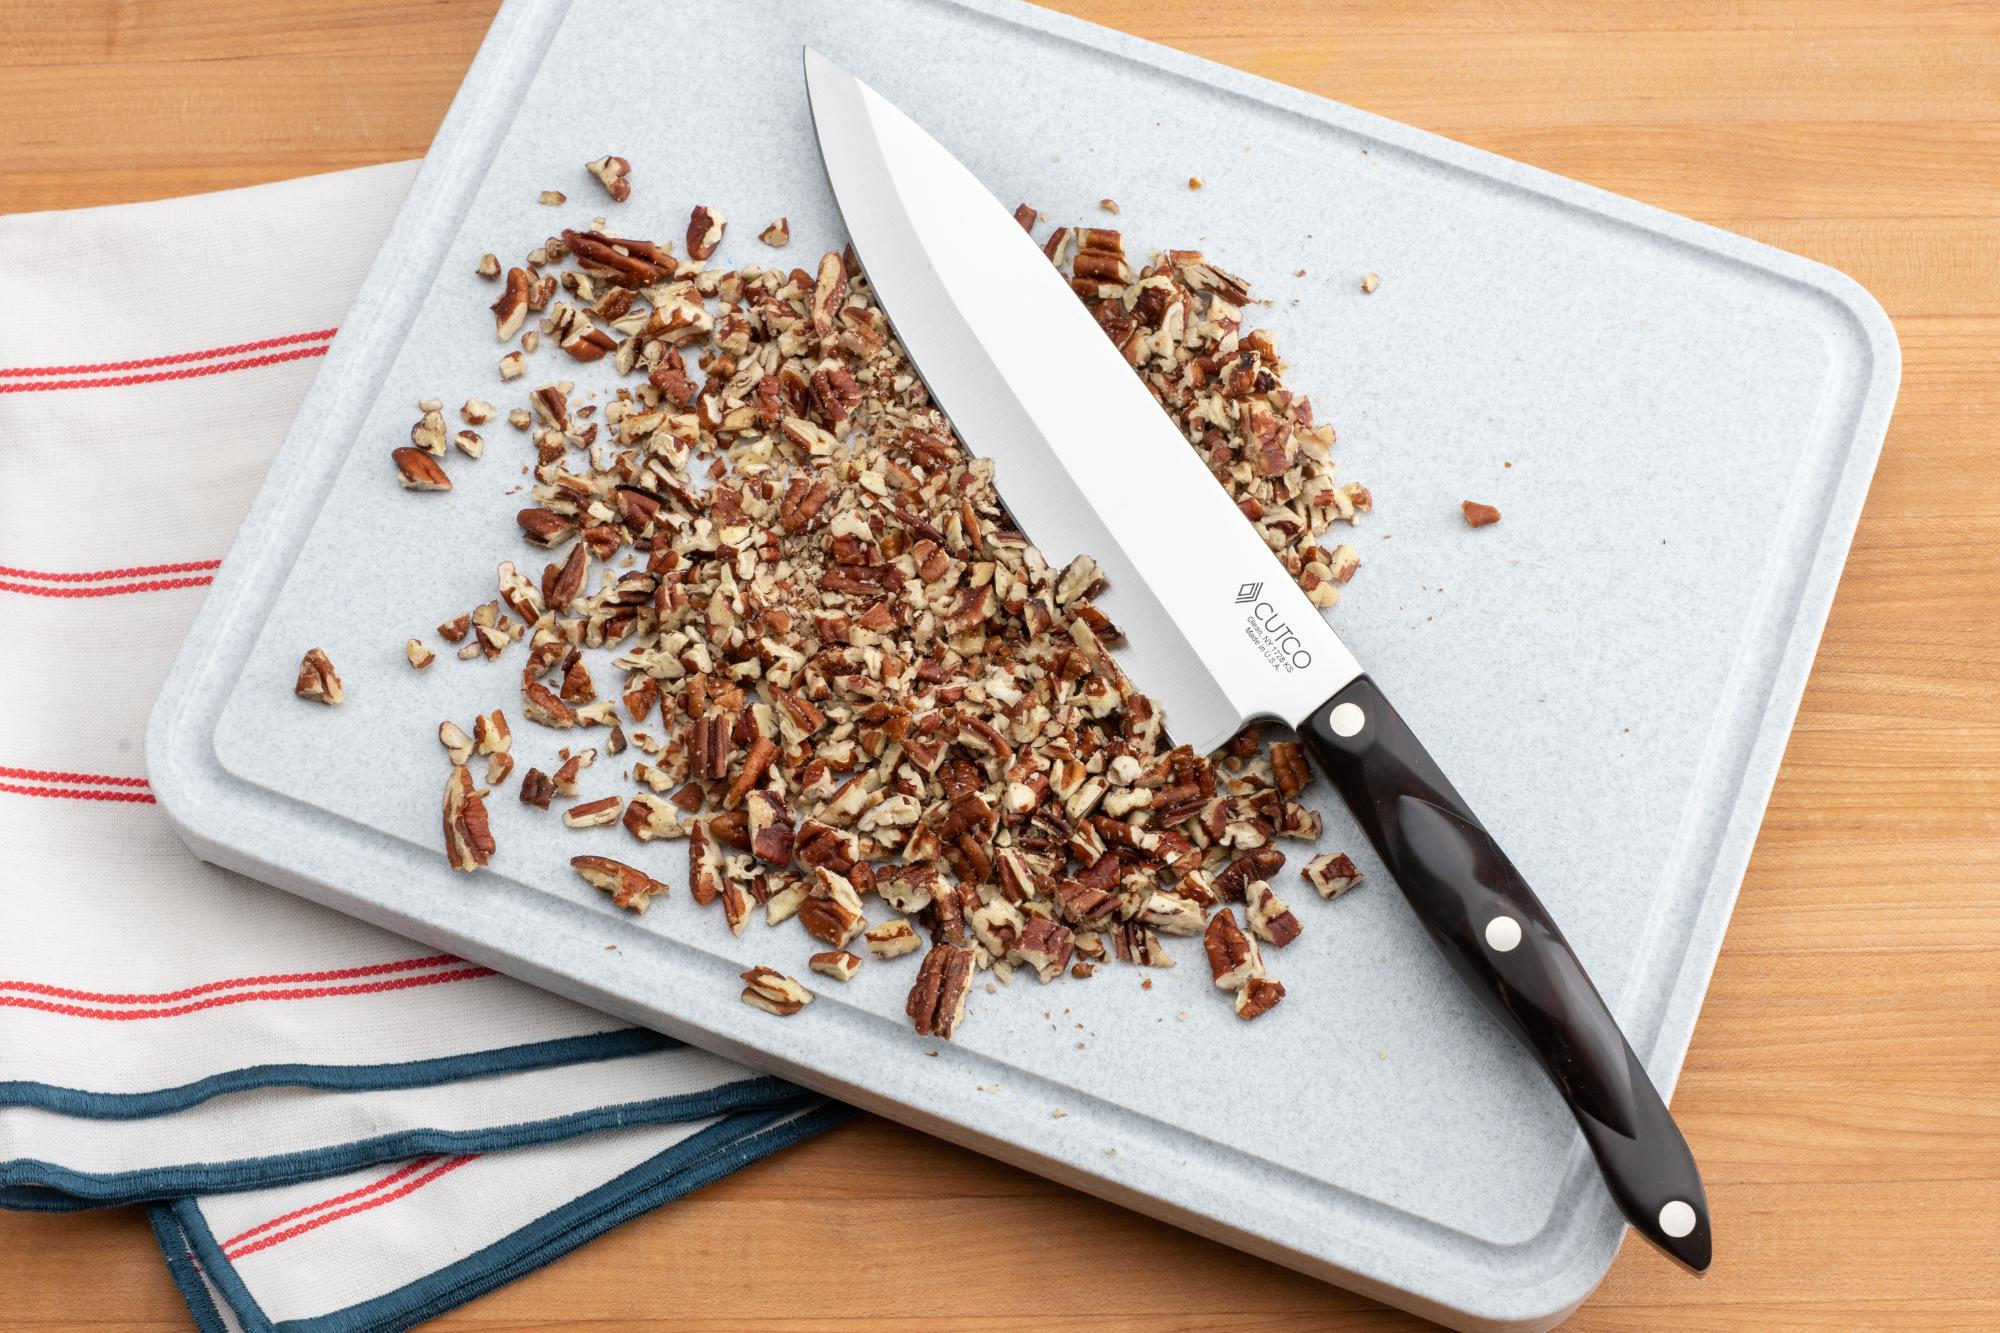 Rough-chopped pecans with the 7-5/8-Inch Petite Chef knife.